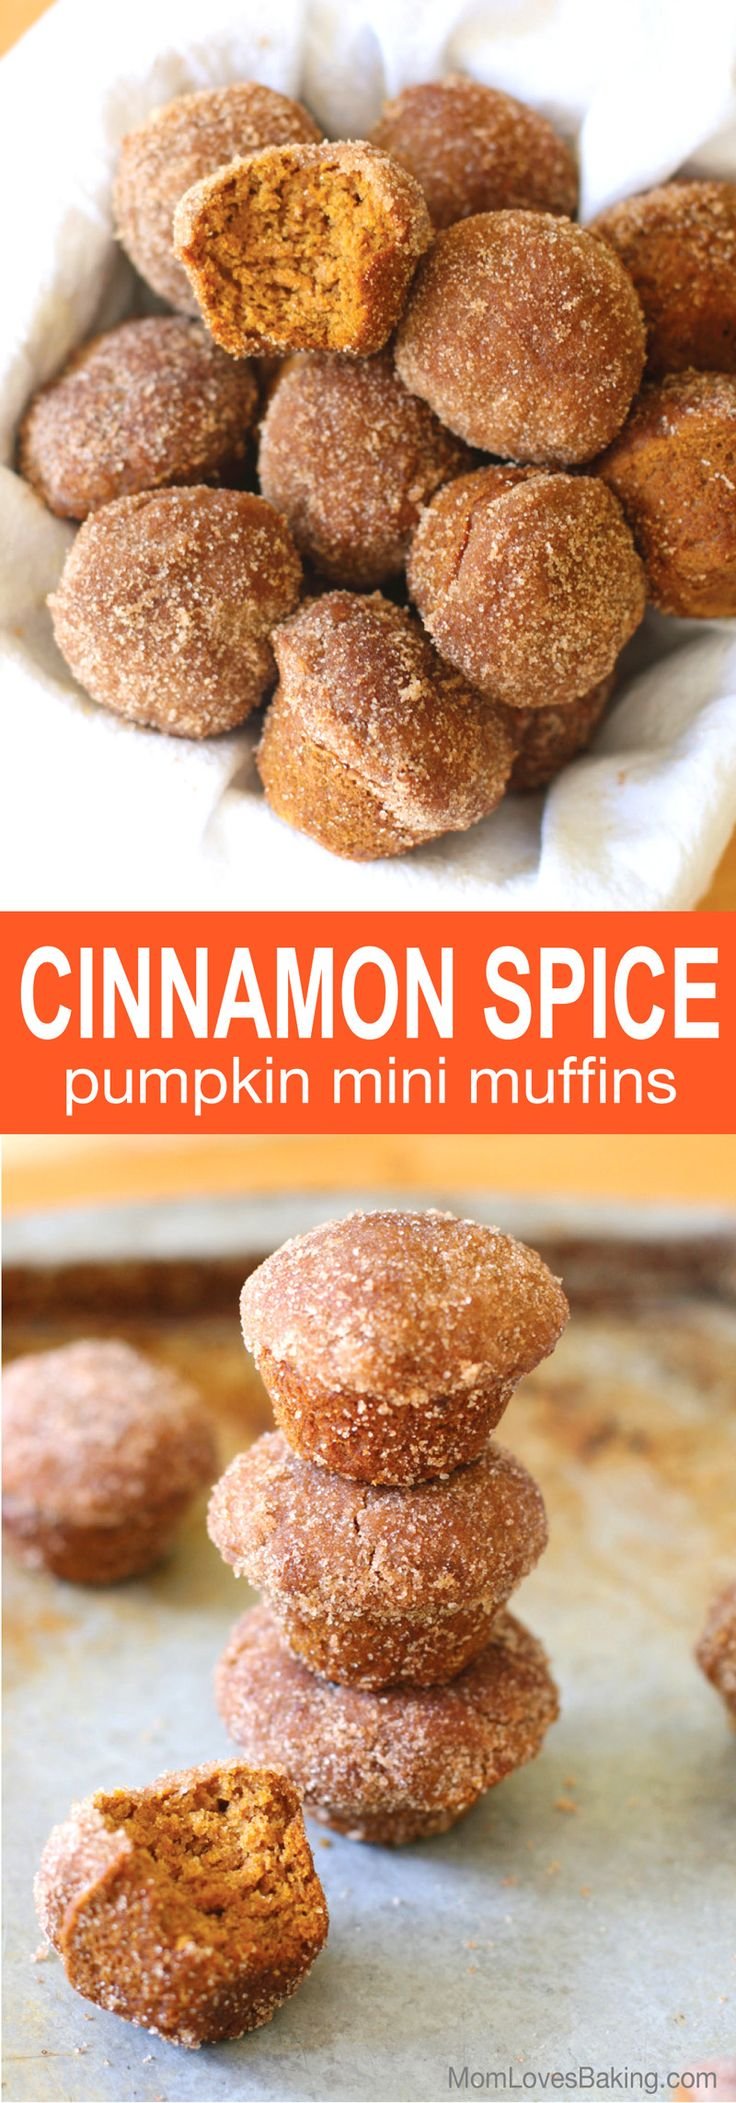 Moist, melt-in-your-mouth pumpkin muffins that are dipped in butter and cinnamon sugar.